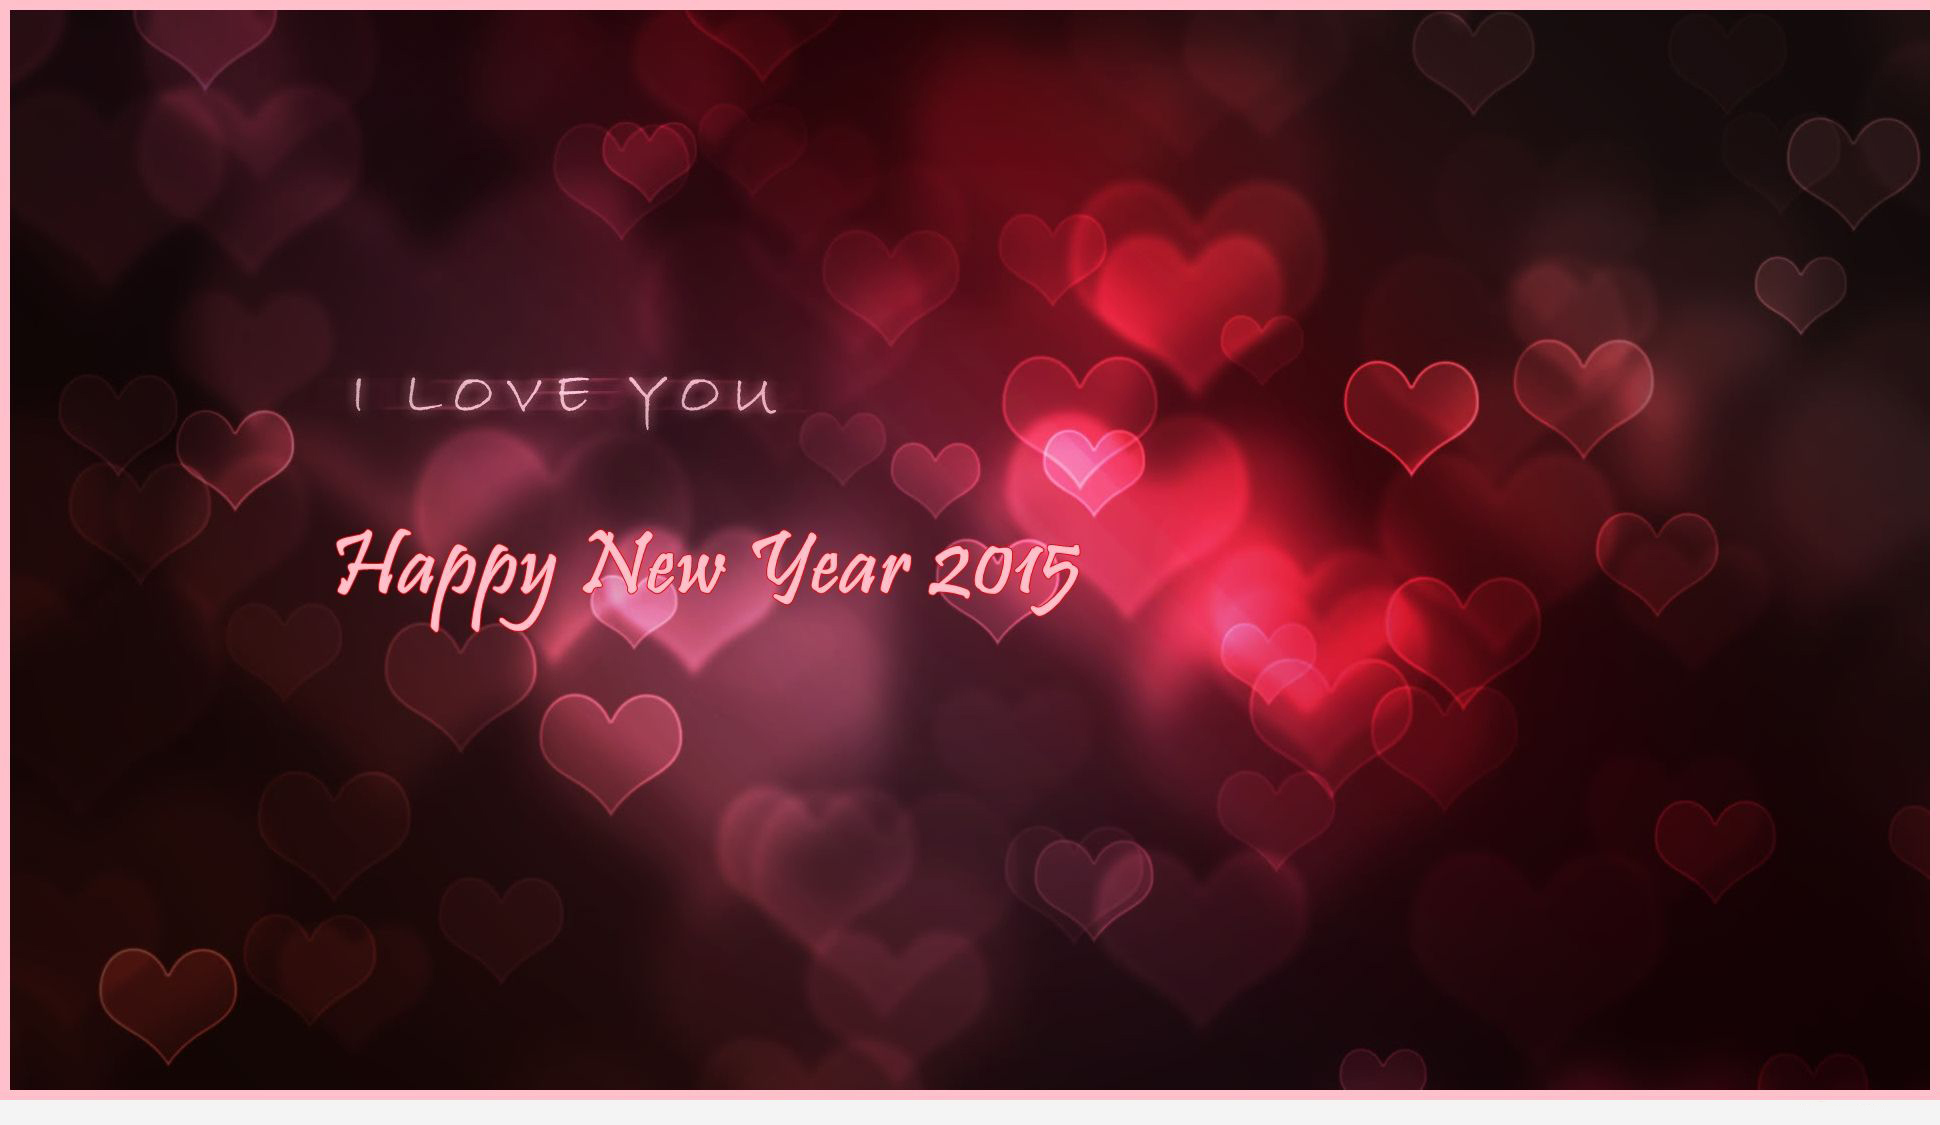 48] Wallpaper Love 2015 on WallpaperSafari 1940x1125